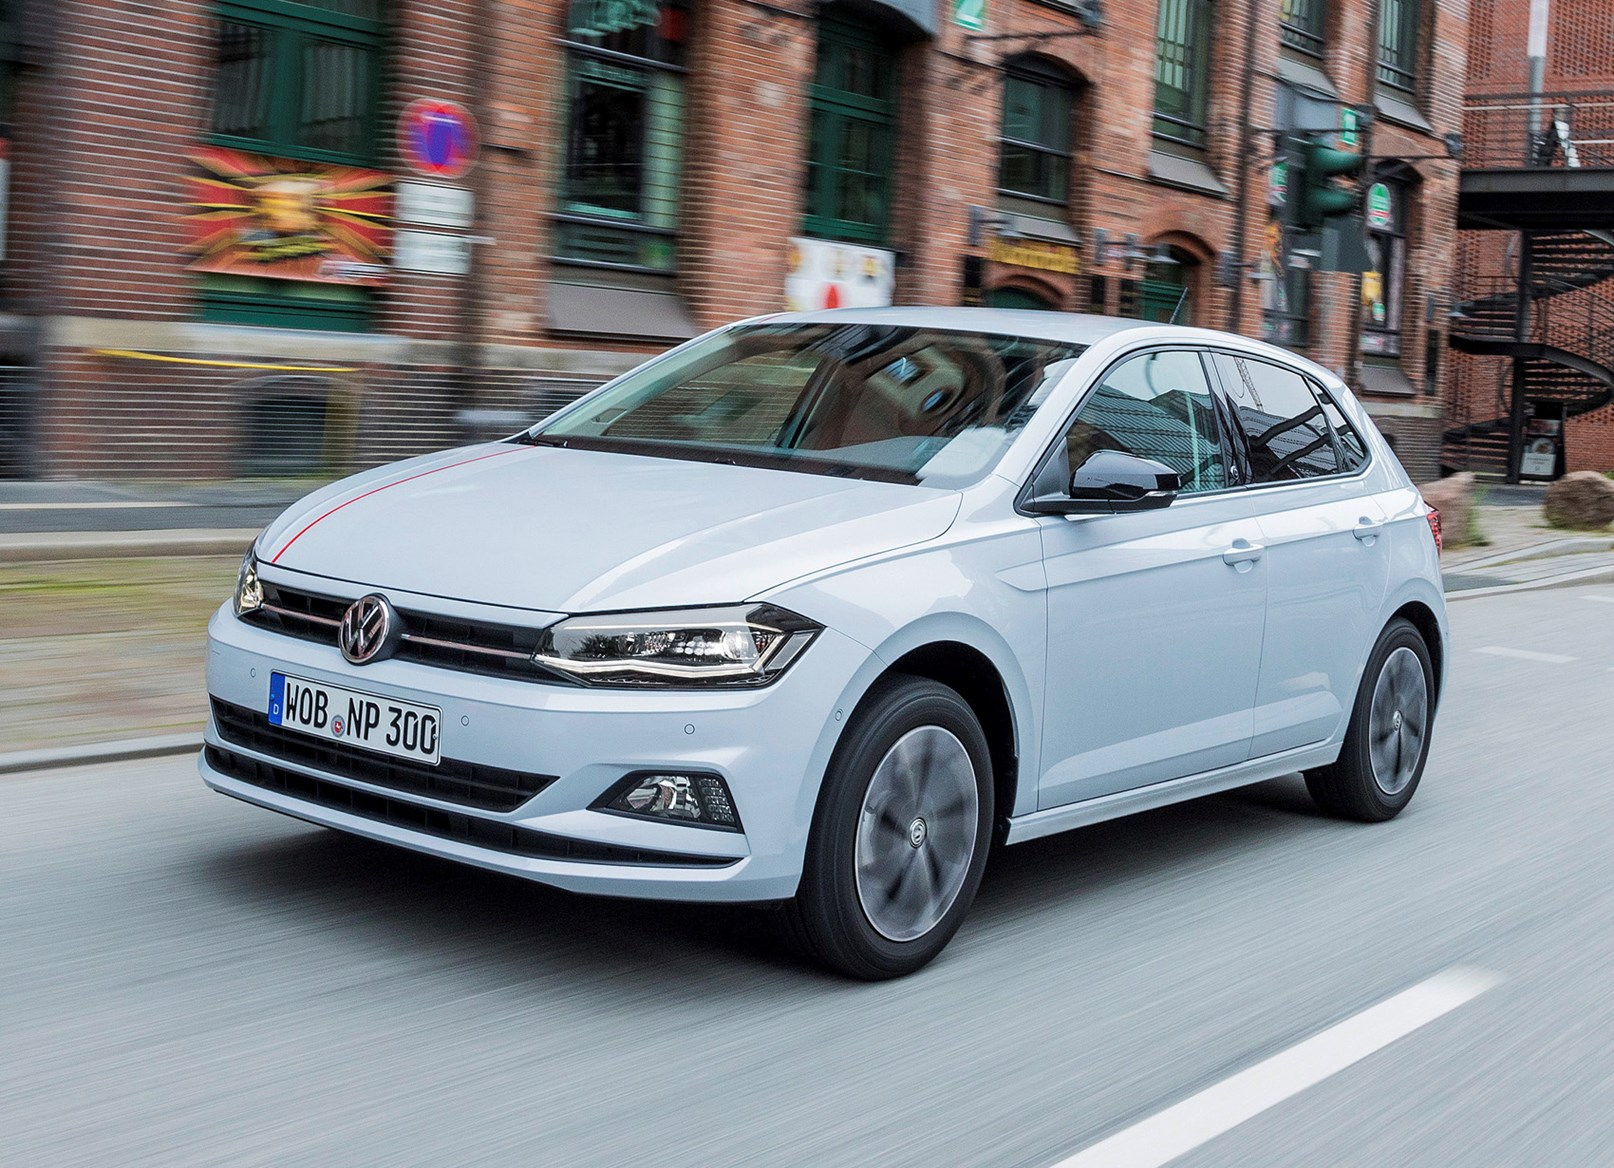 Volkswagen Polo Review: Summary